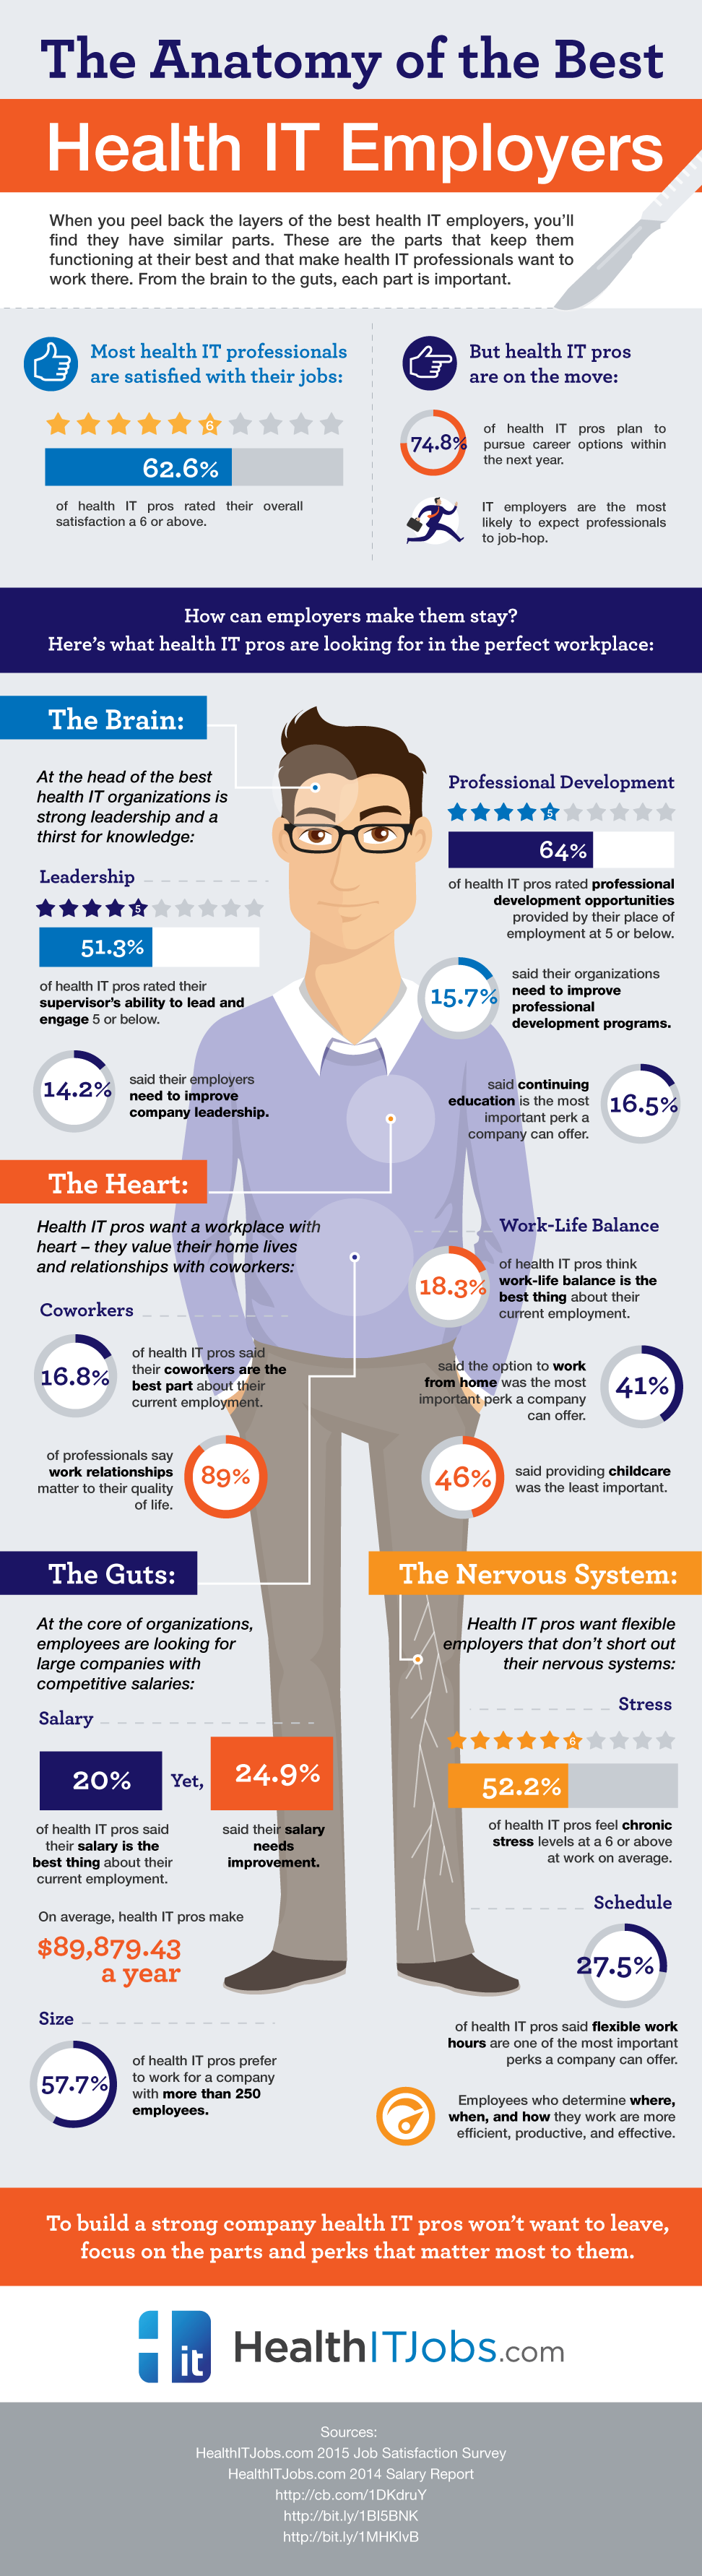 What Are Health IT Employees Looking For